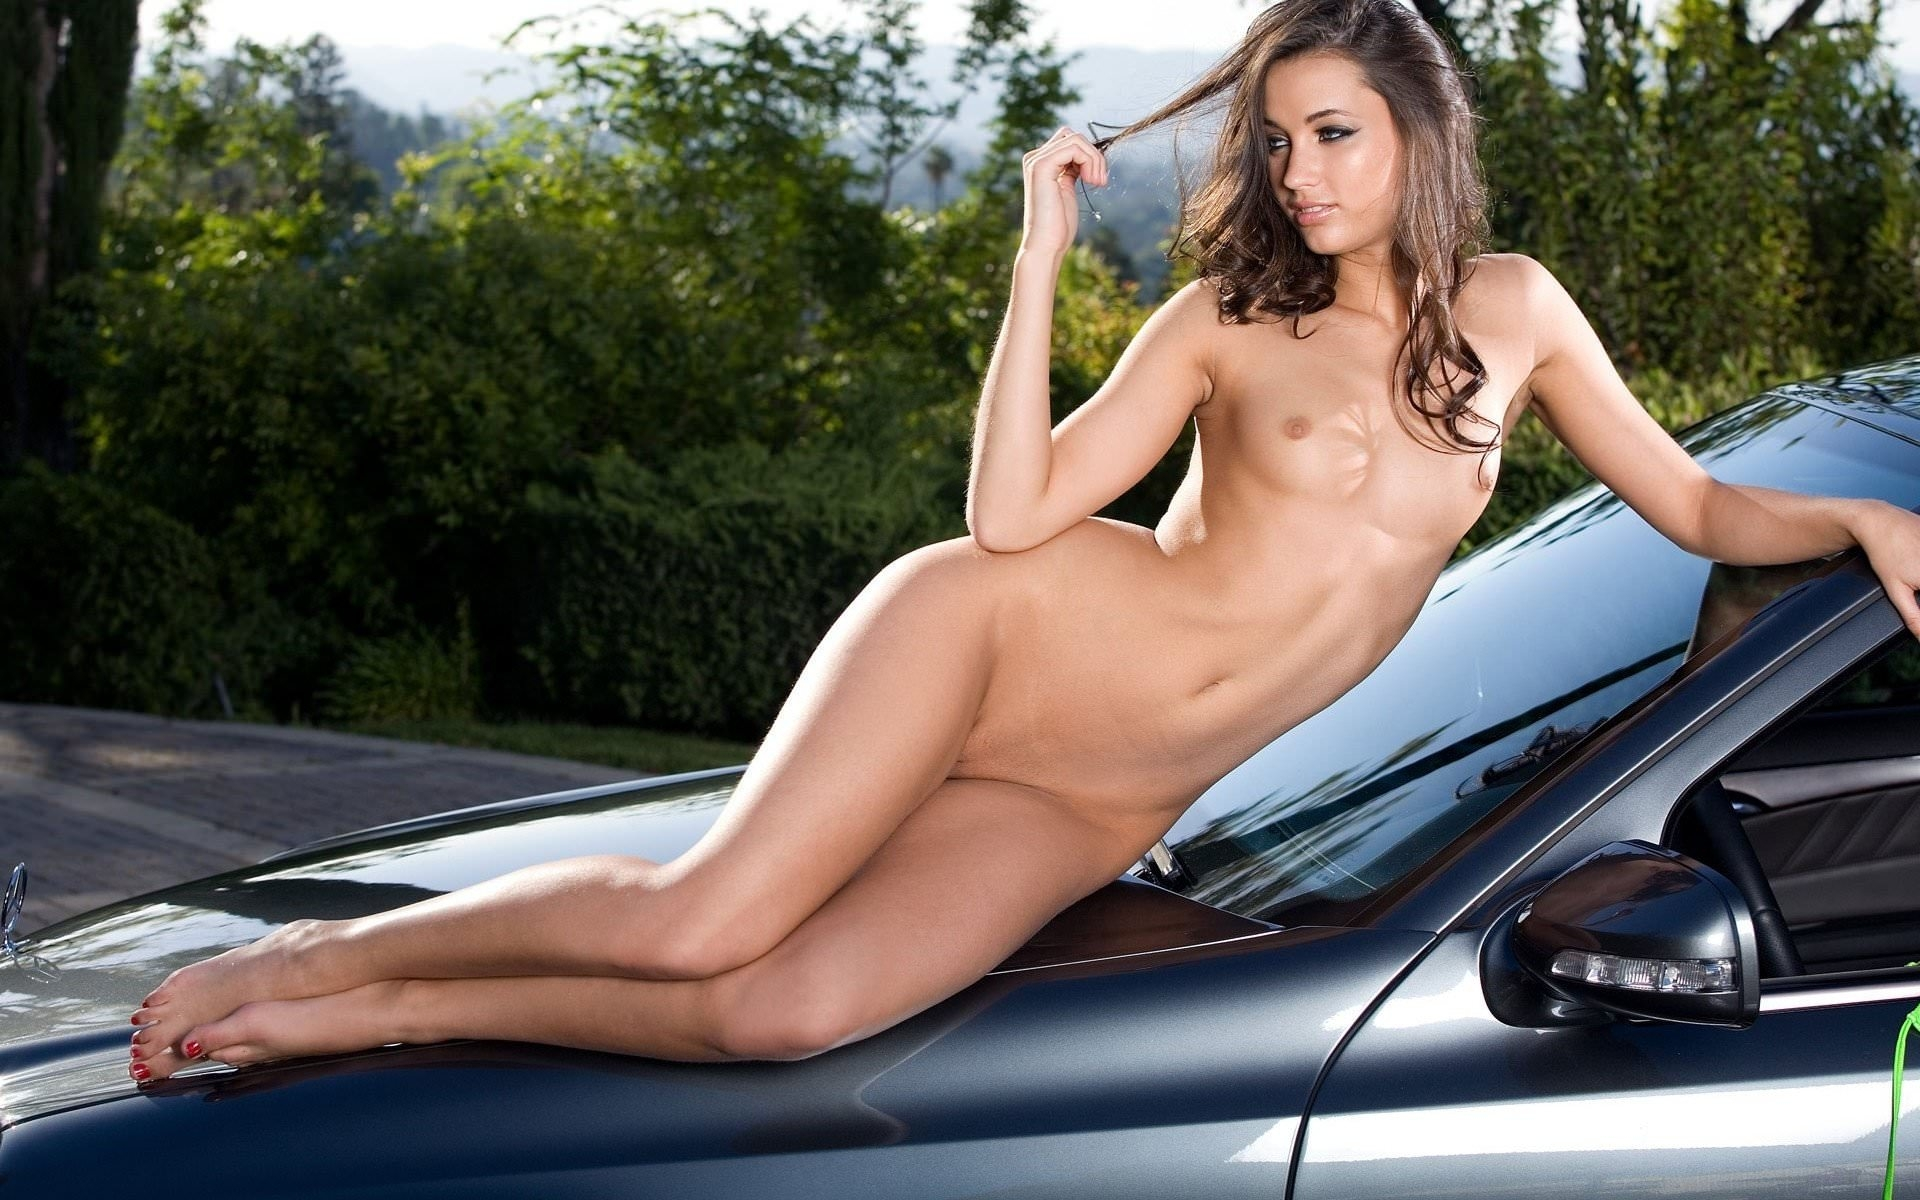 Aspen rae sexy girl hot pussy and ferrari car wallpapers